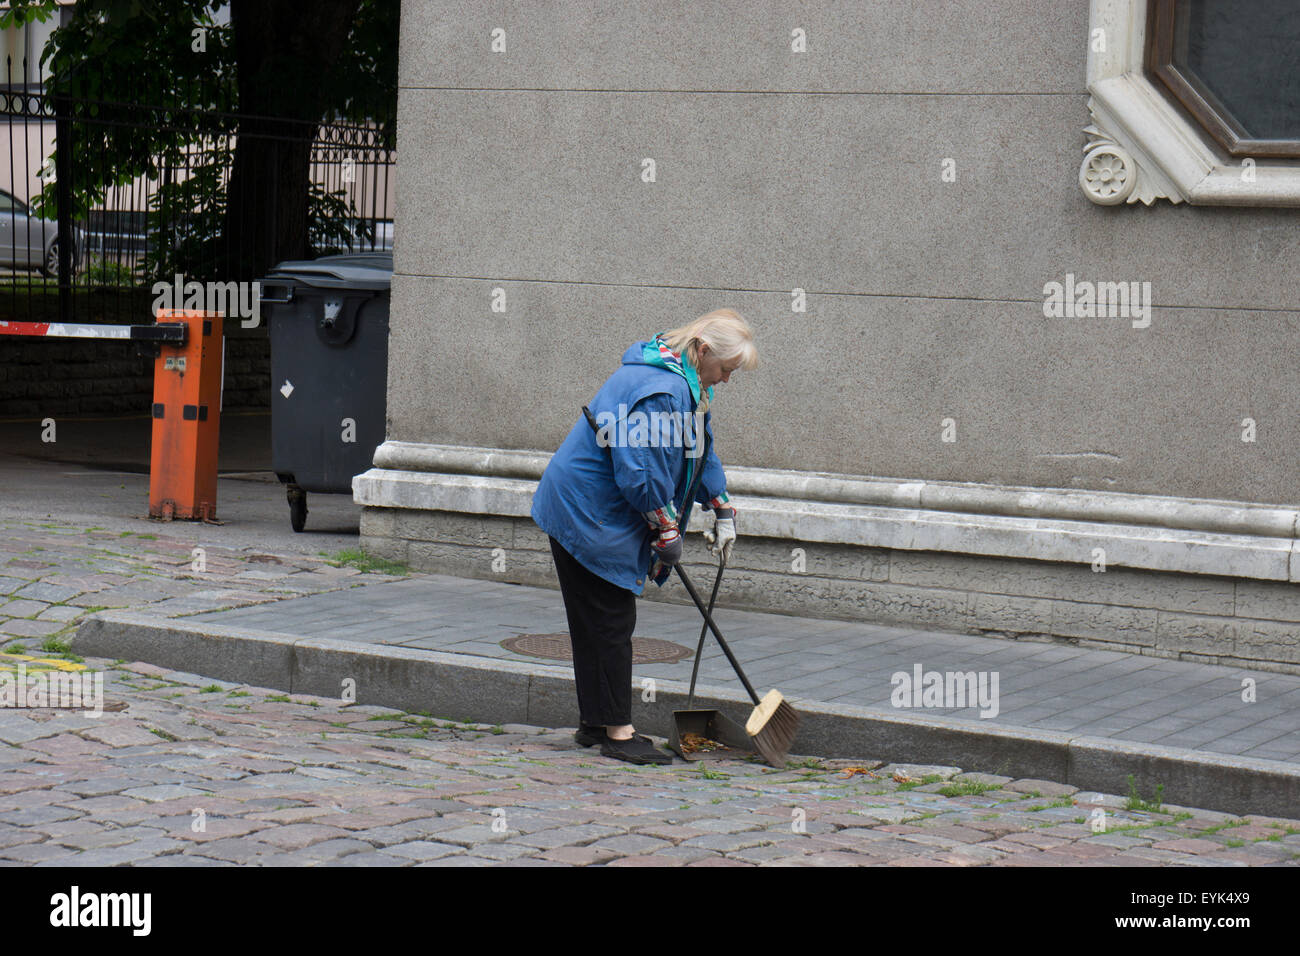 A woman sweeping the street early one morning in Tallinn, Estonia's old town. - Stock Image